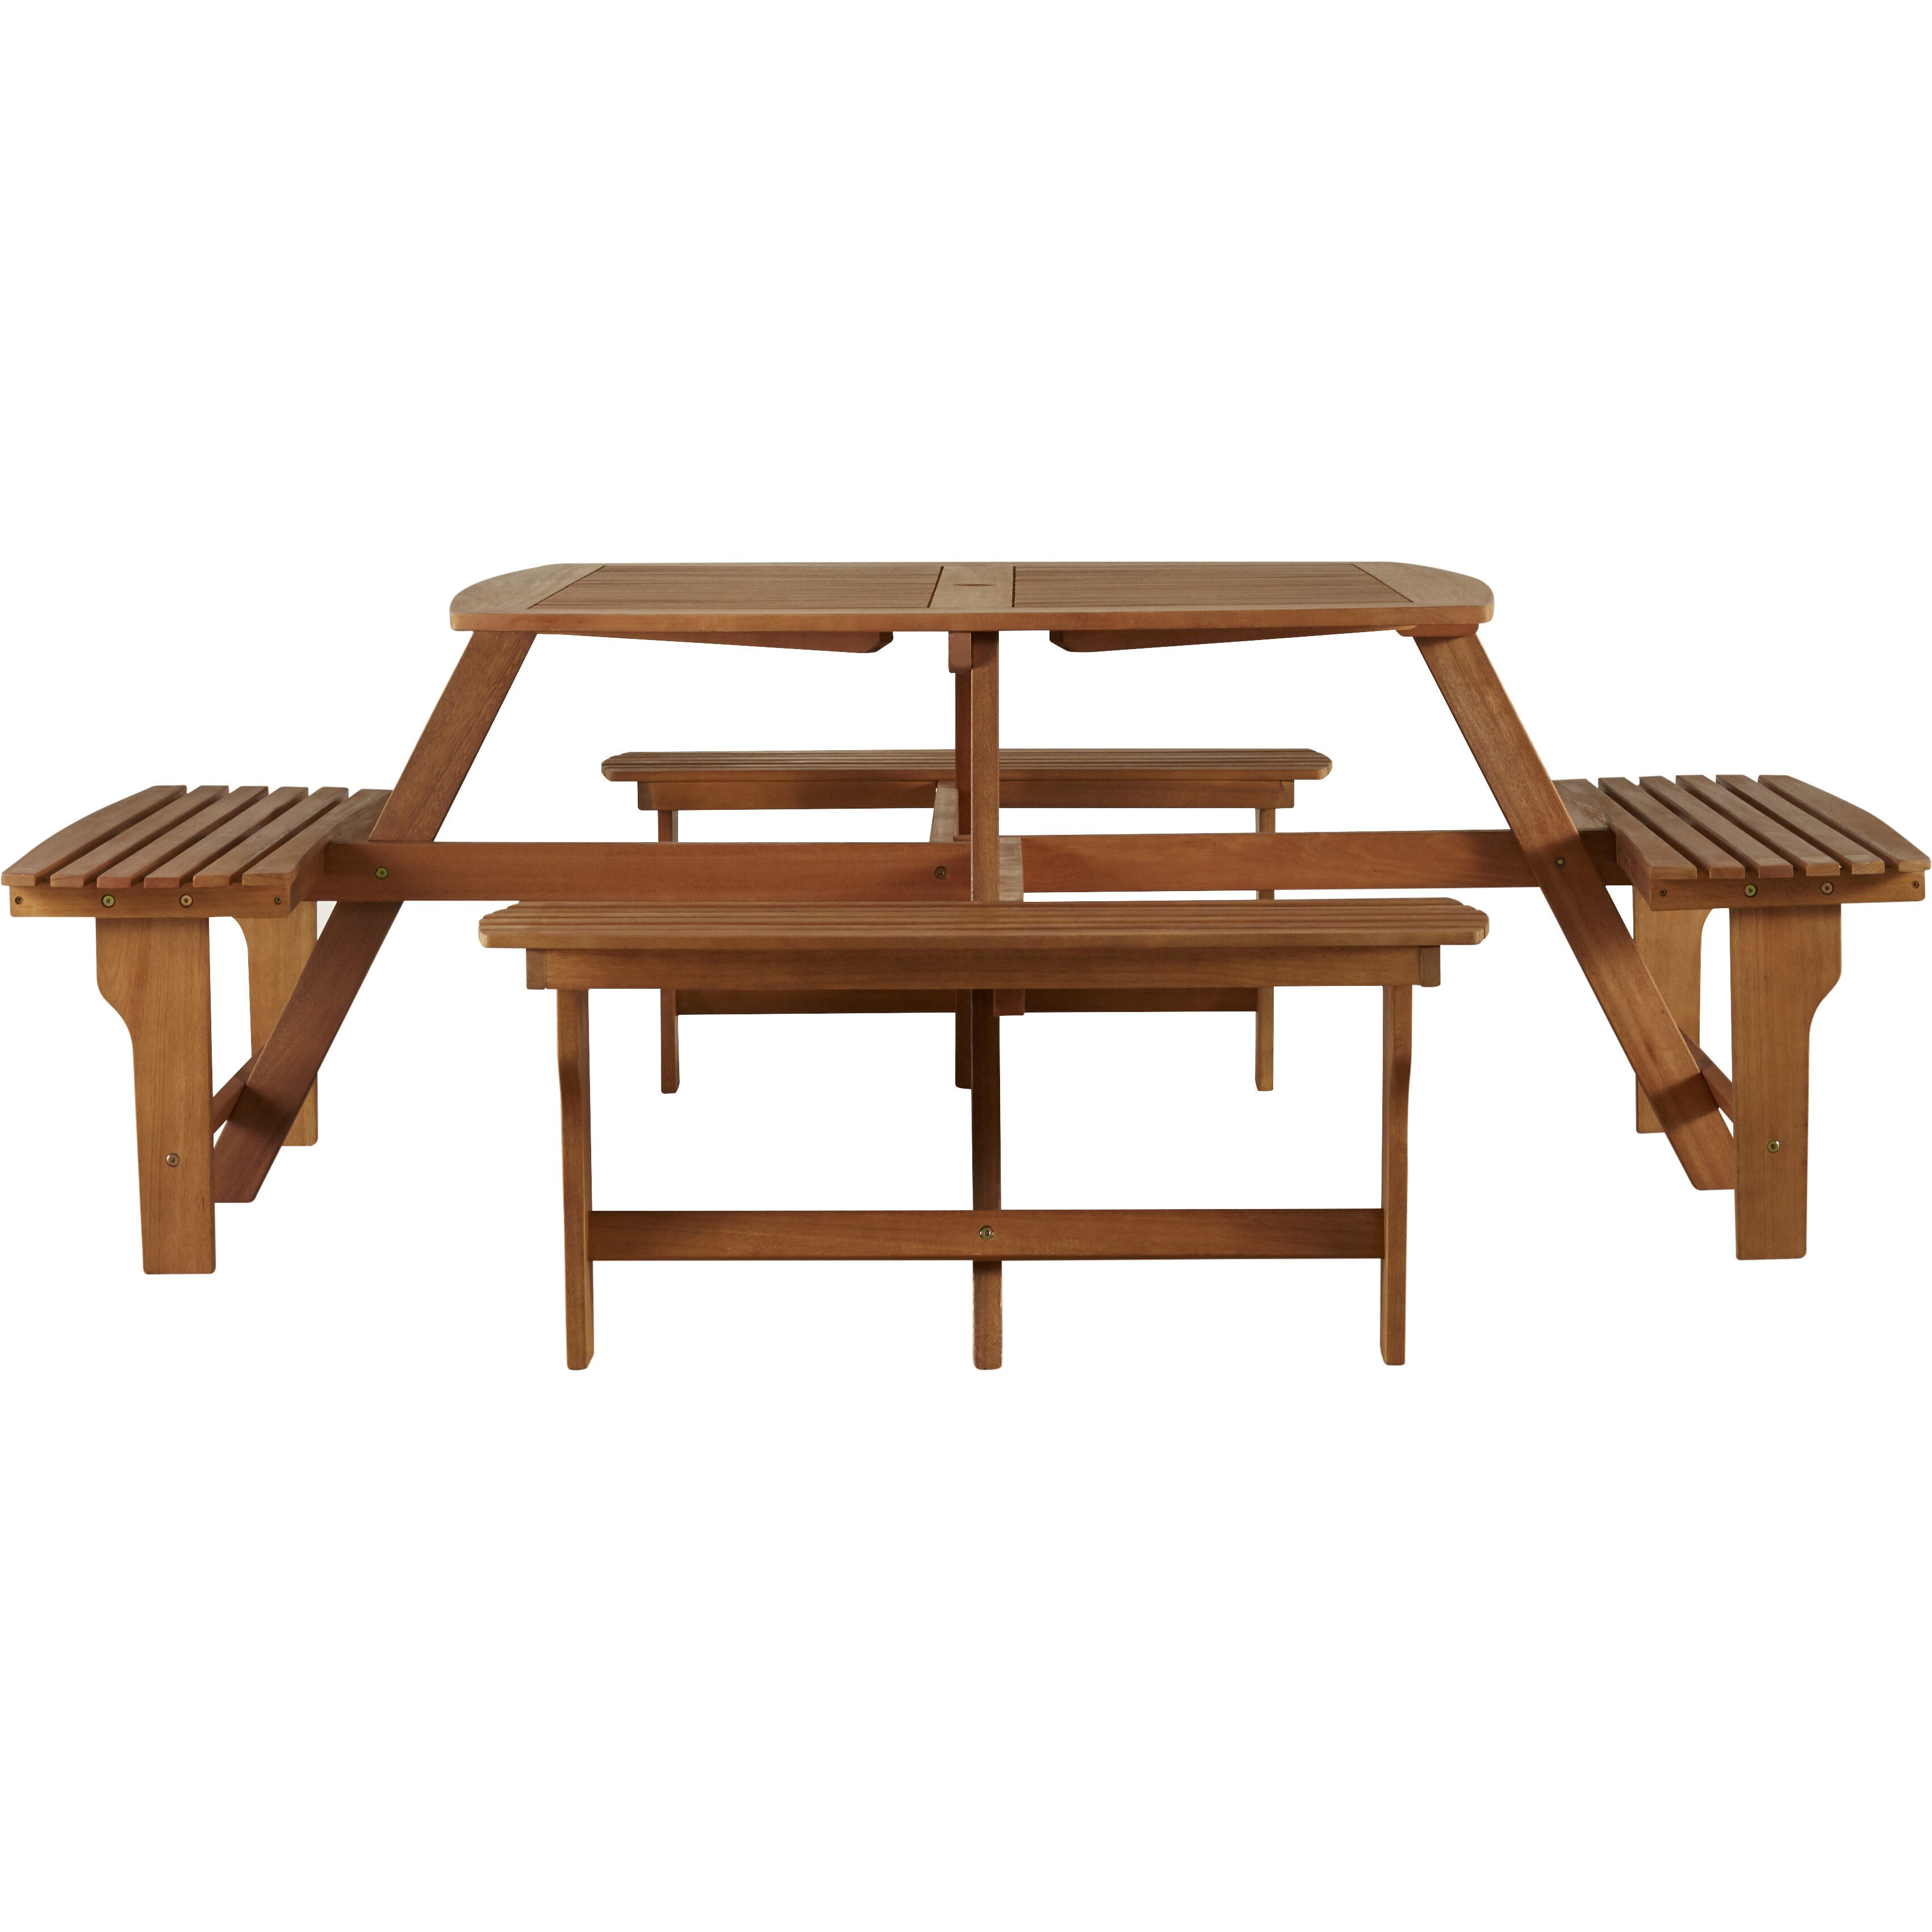 Picnic Table Set : ... Posts Brasstown 5 Piece Wood Picnic Table Set & Reviews  Wayfair